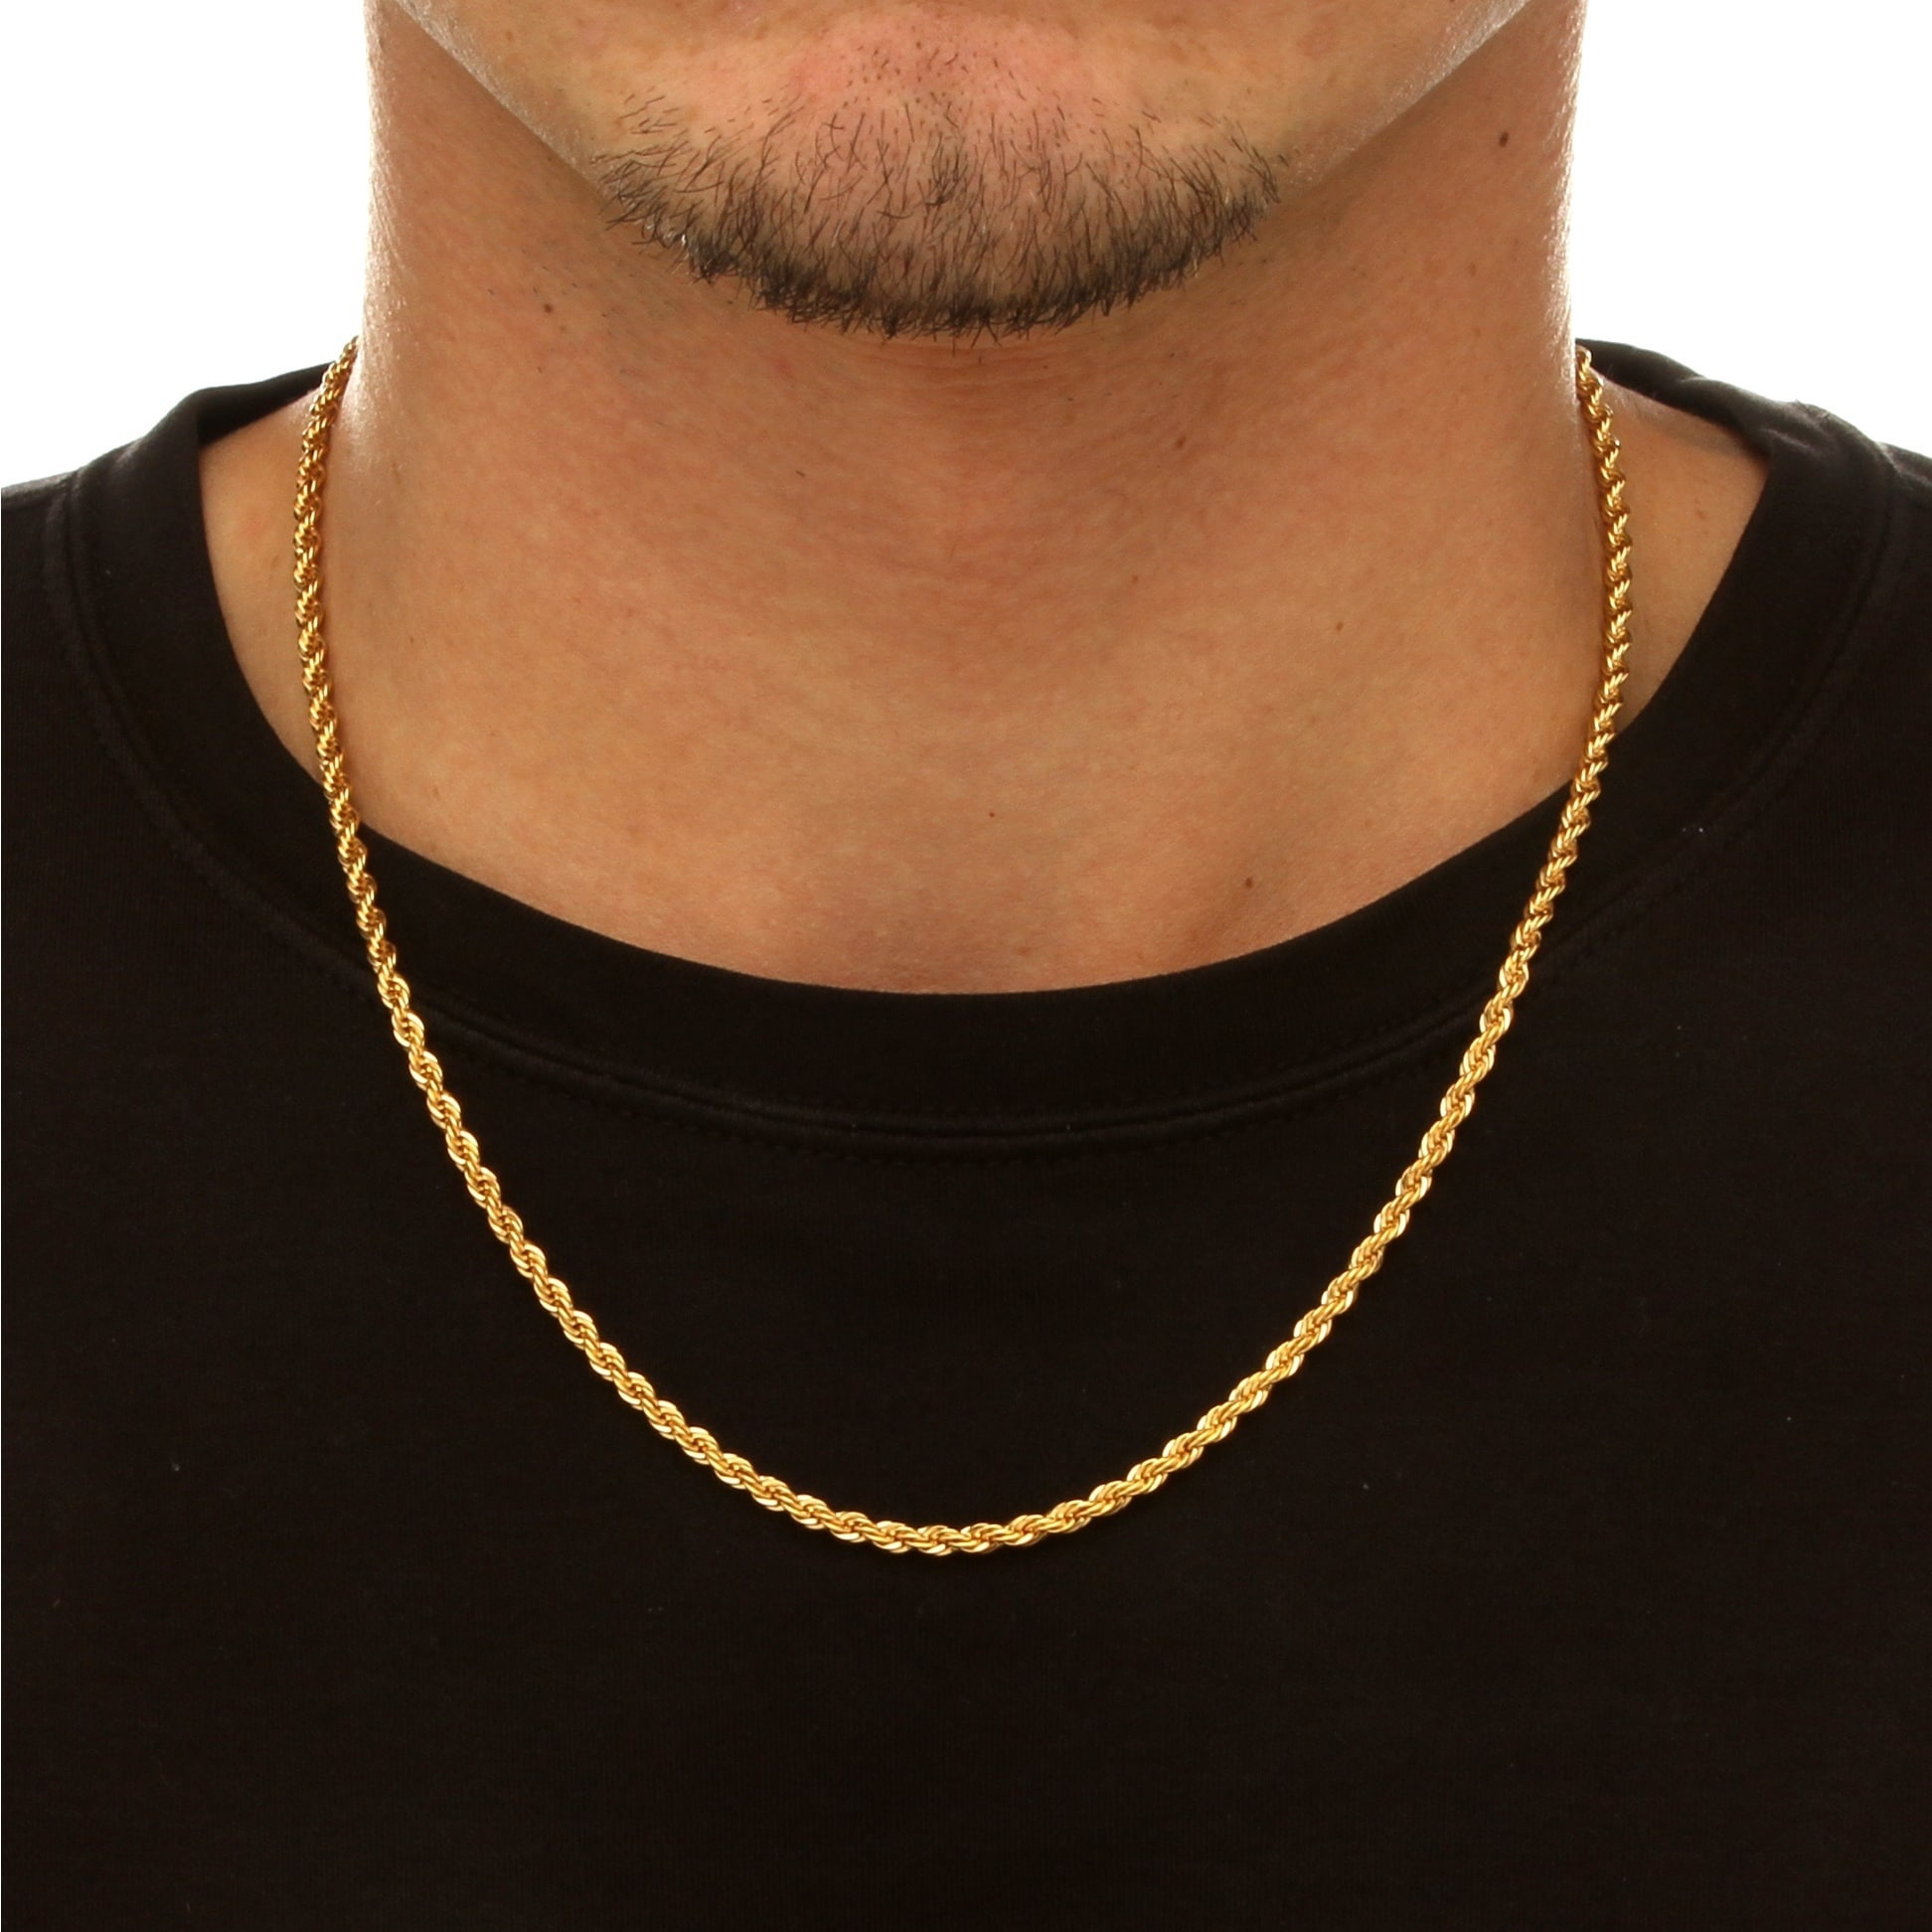 a3b39e352a0 Shop Men's Rope Chain Necklace in 18k Gold Over .925 Sterling Silver - On  Sale - Free Shipping Today - Overstock - 9109510